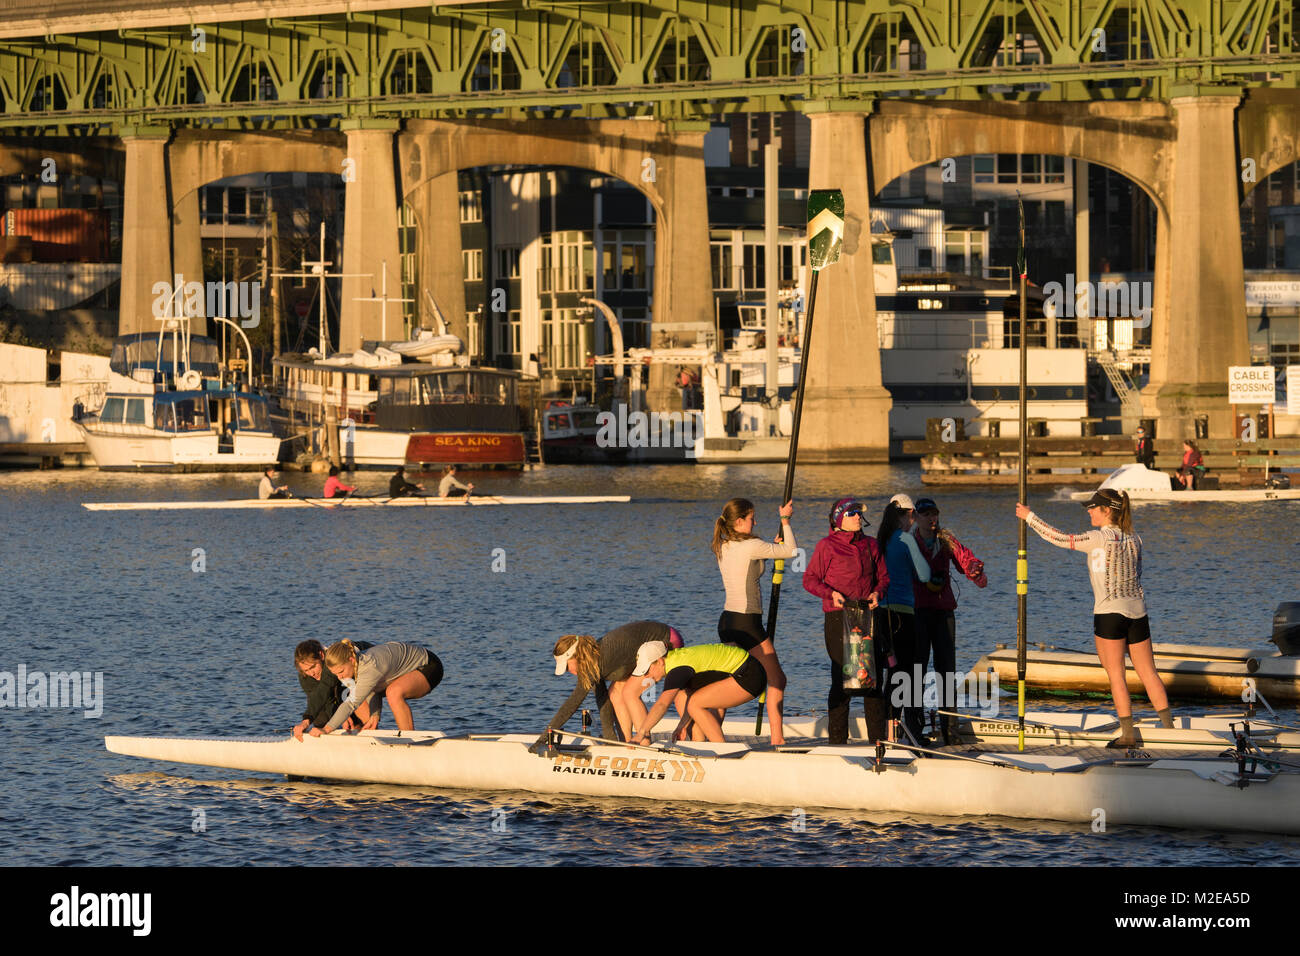 United States, Washington, Seattle, Women just back from a workout in rowing shells with the University Bridge in - Stock Image